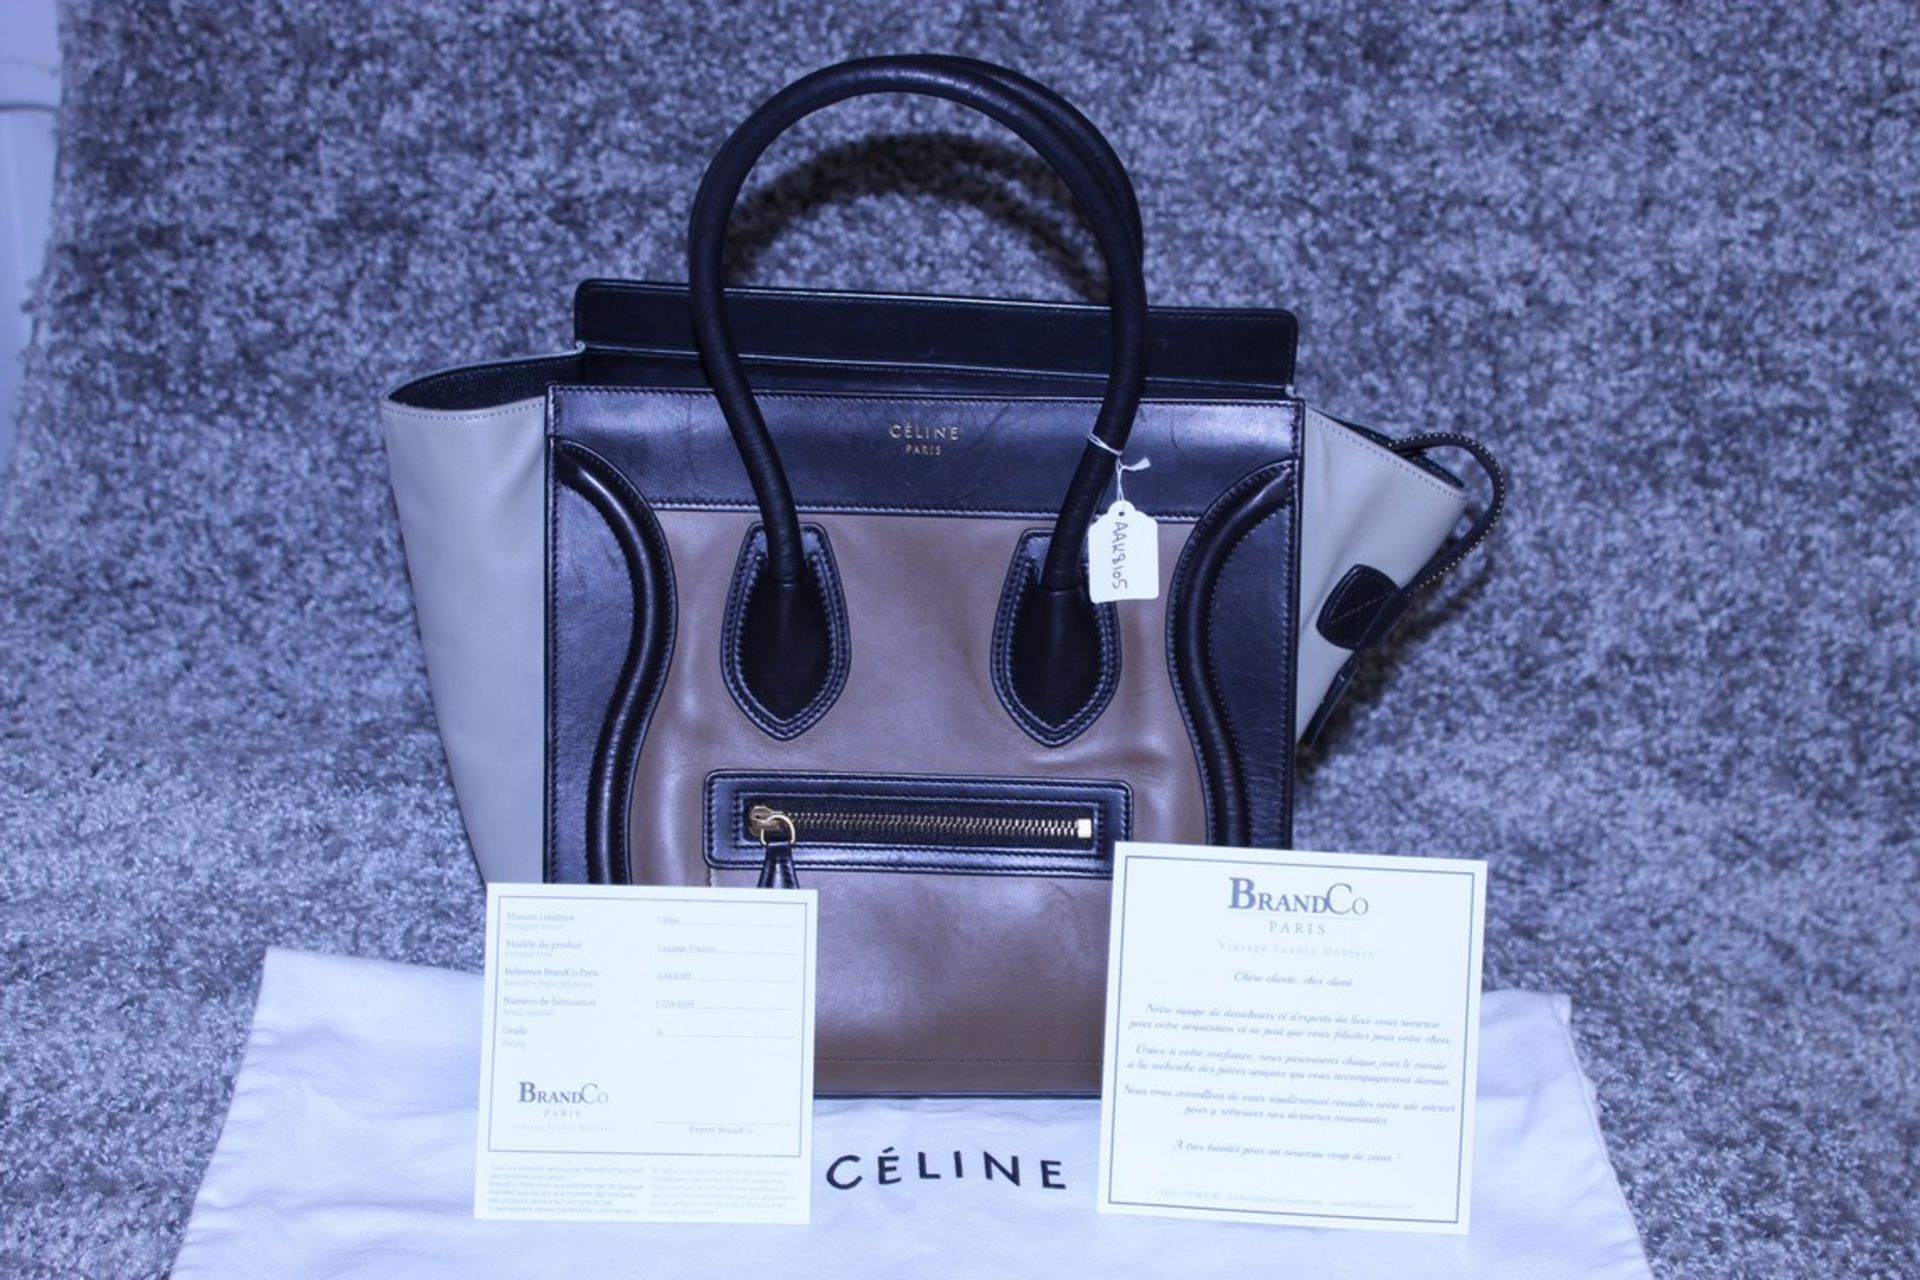 RRP £1,500 Celine Luggage Tricol Handbag, Céline 'Mini Luggage'. Open Swith A Zipper On Top And Is - Image 4 of 5